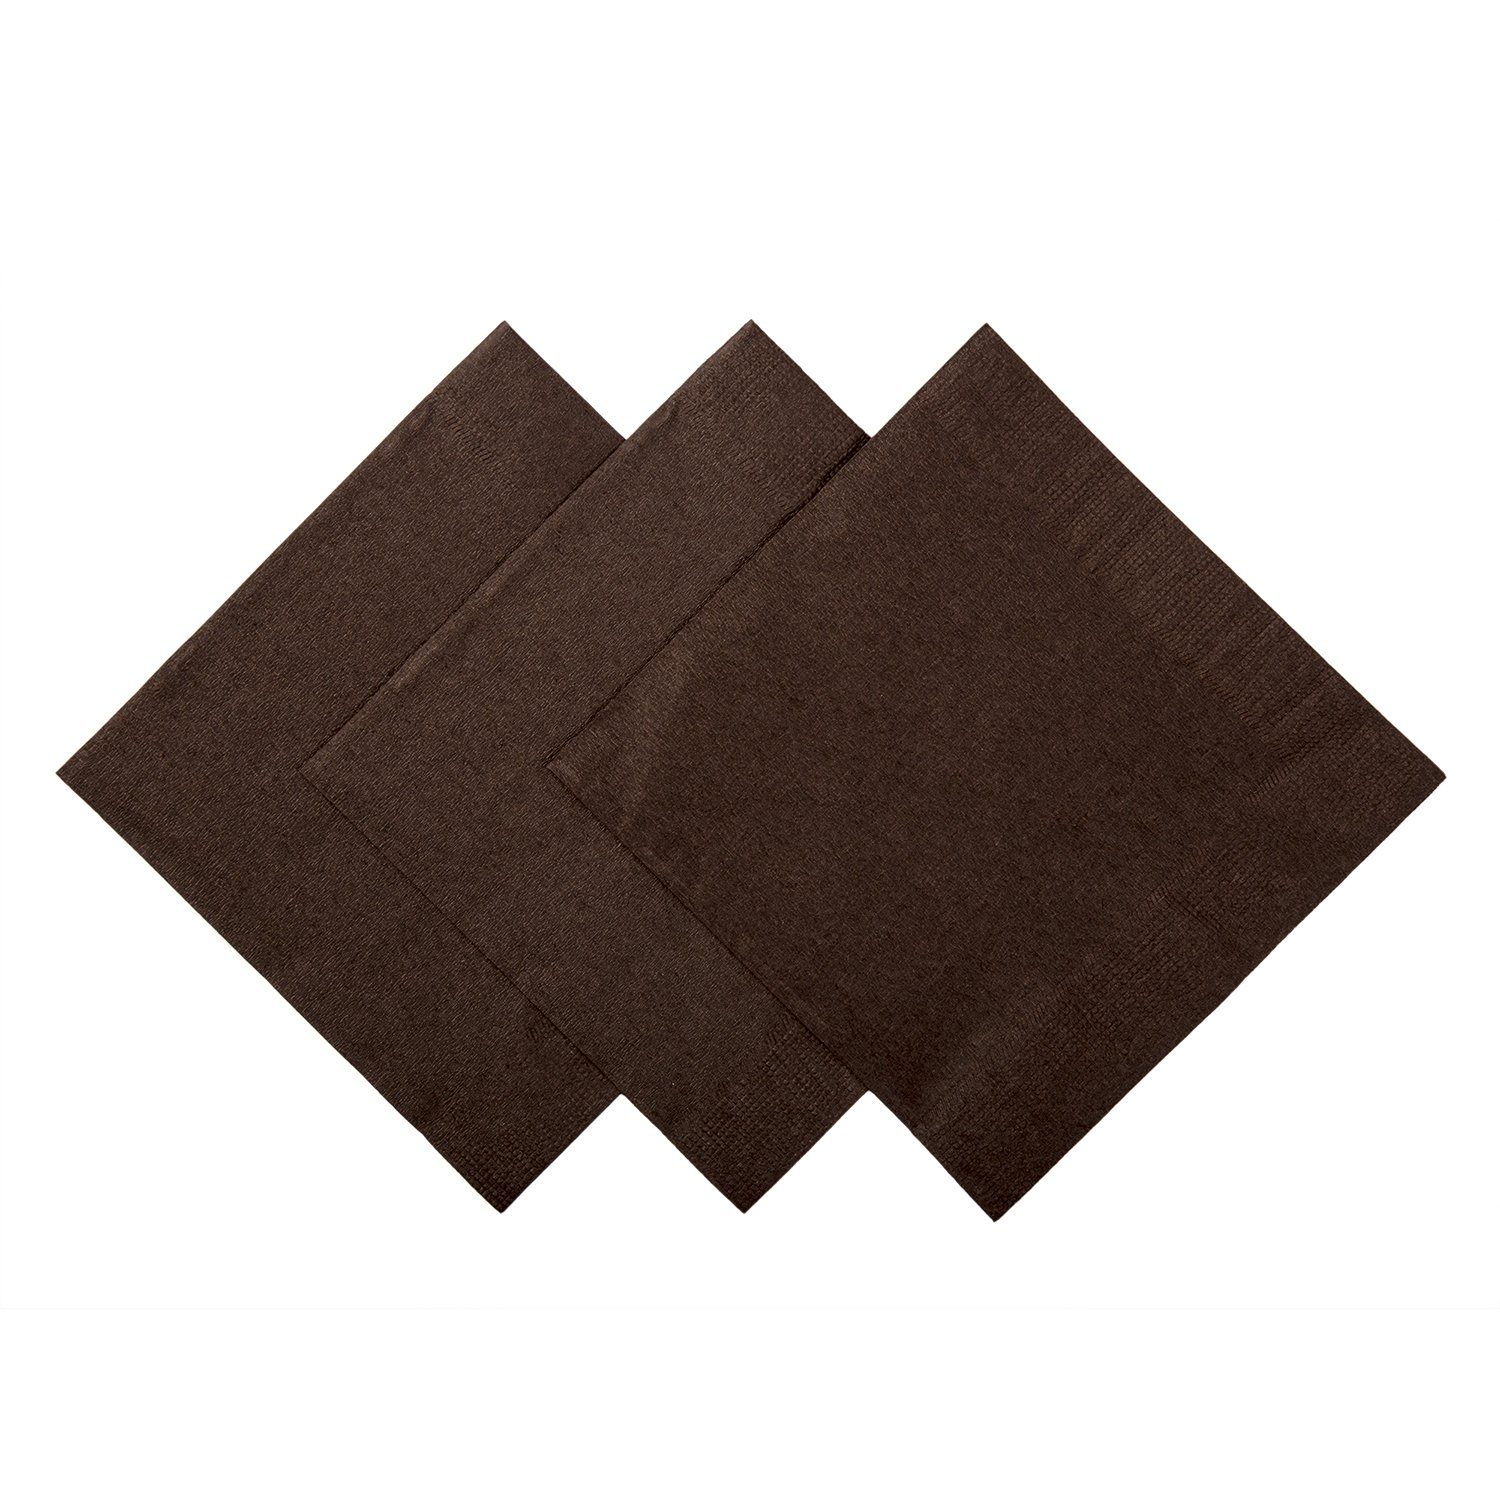 Royal Chocolate Brown Beverage Napkin, Package of 200